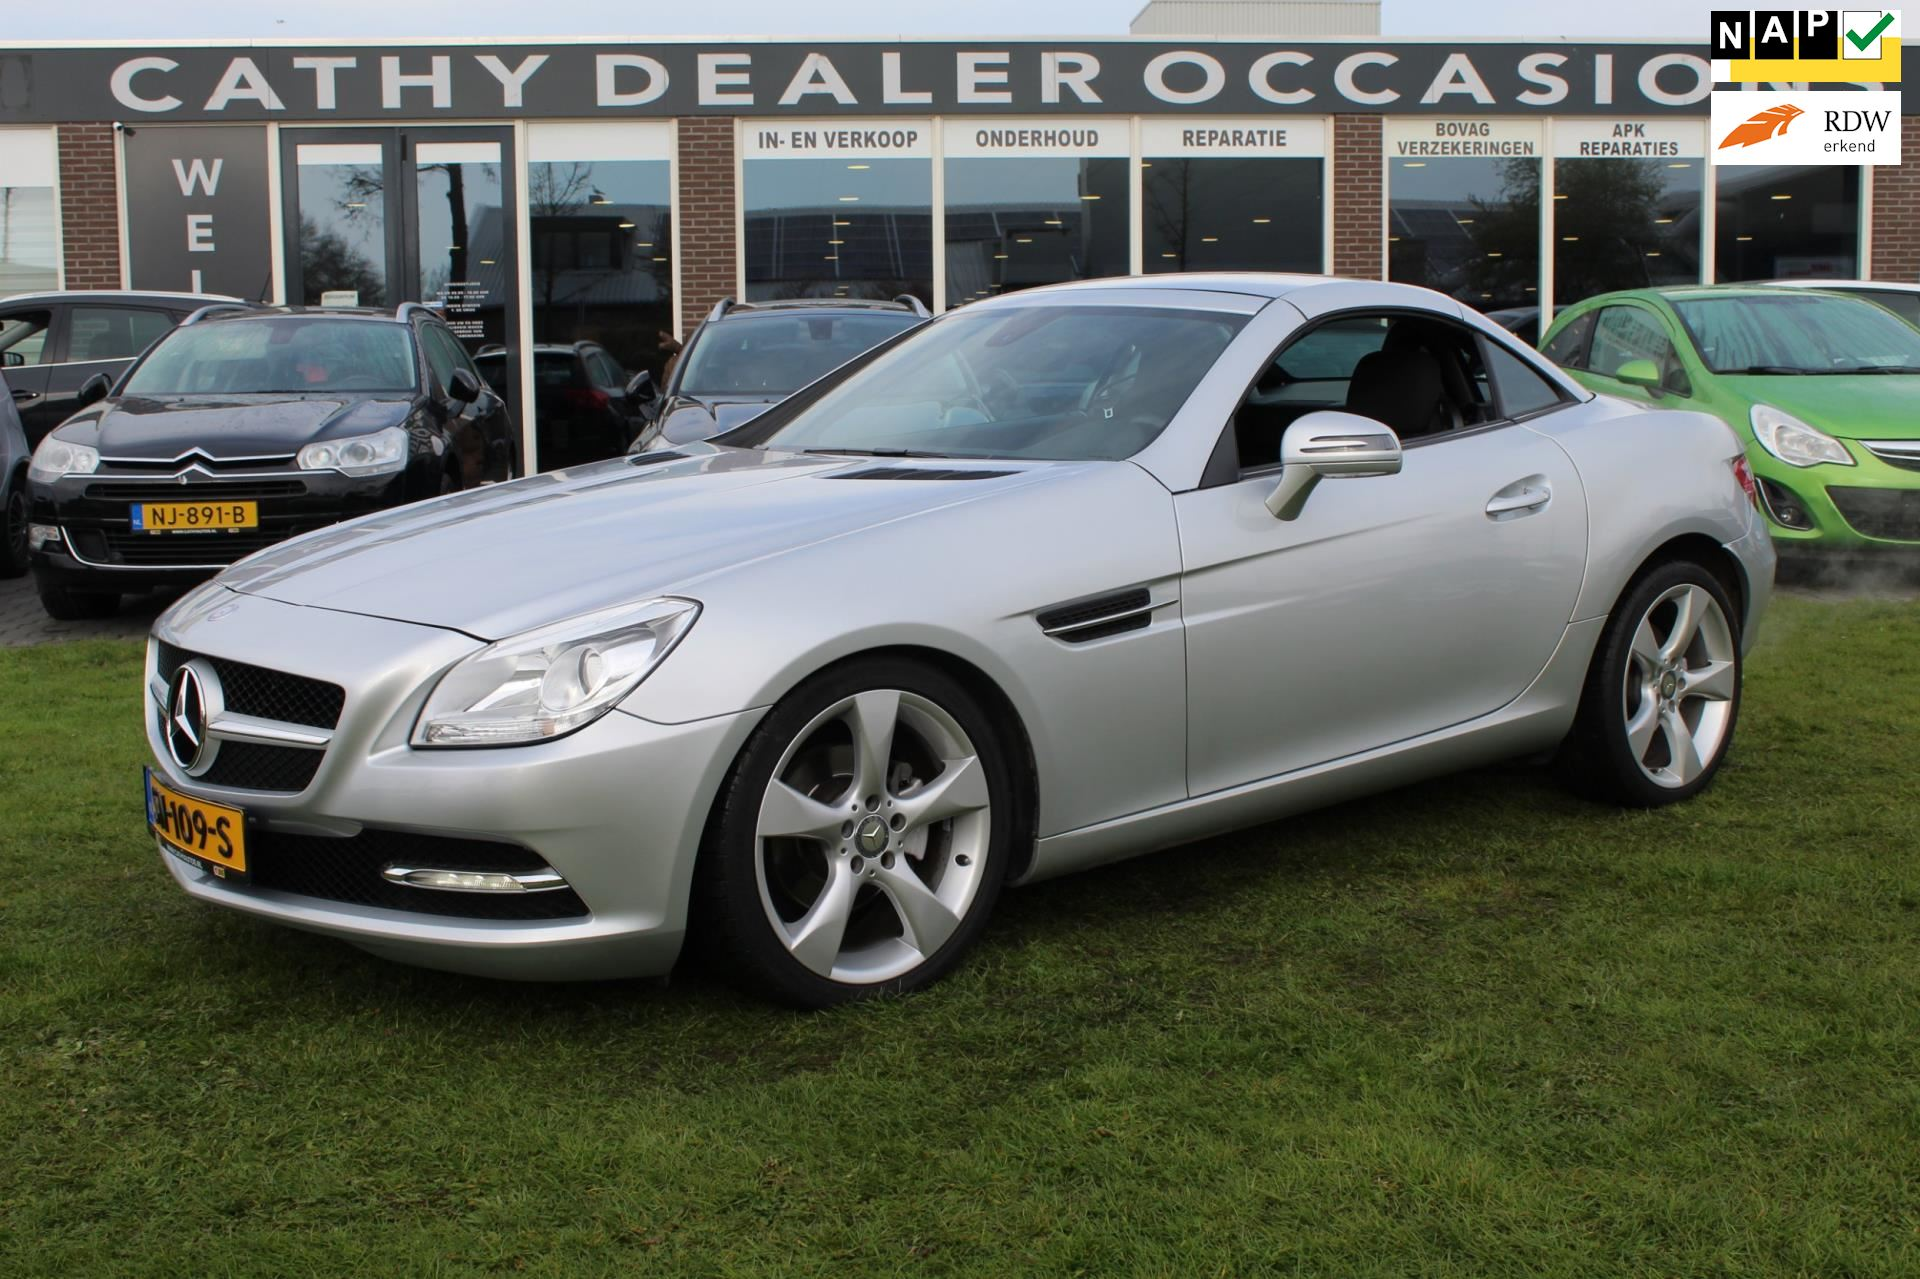 Mercedes-Benz SLK-klasse occasion - Cathy Dealer Occasions